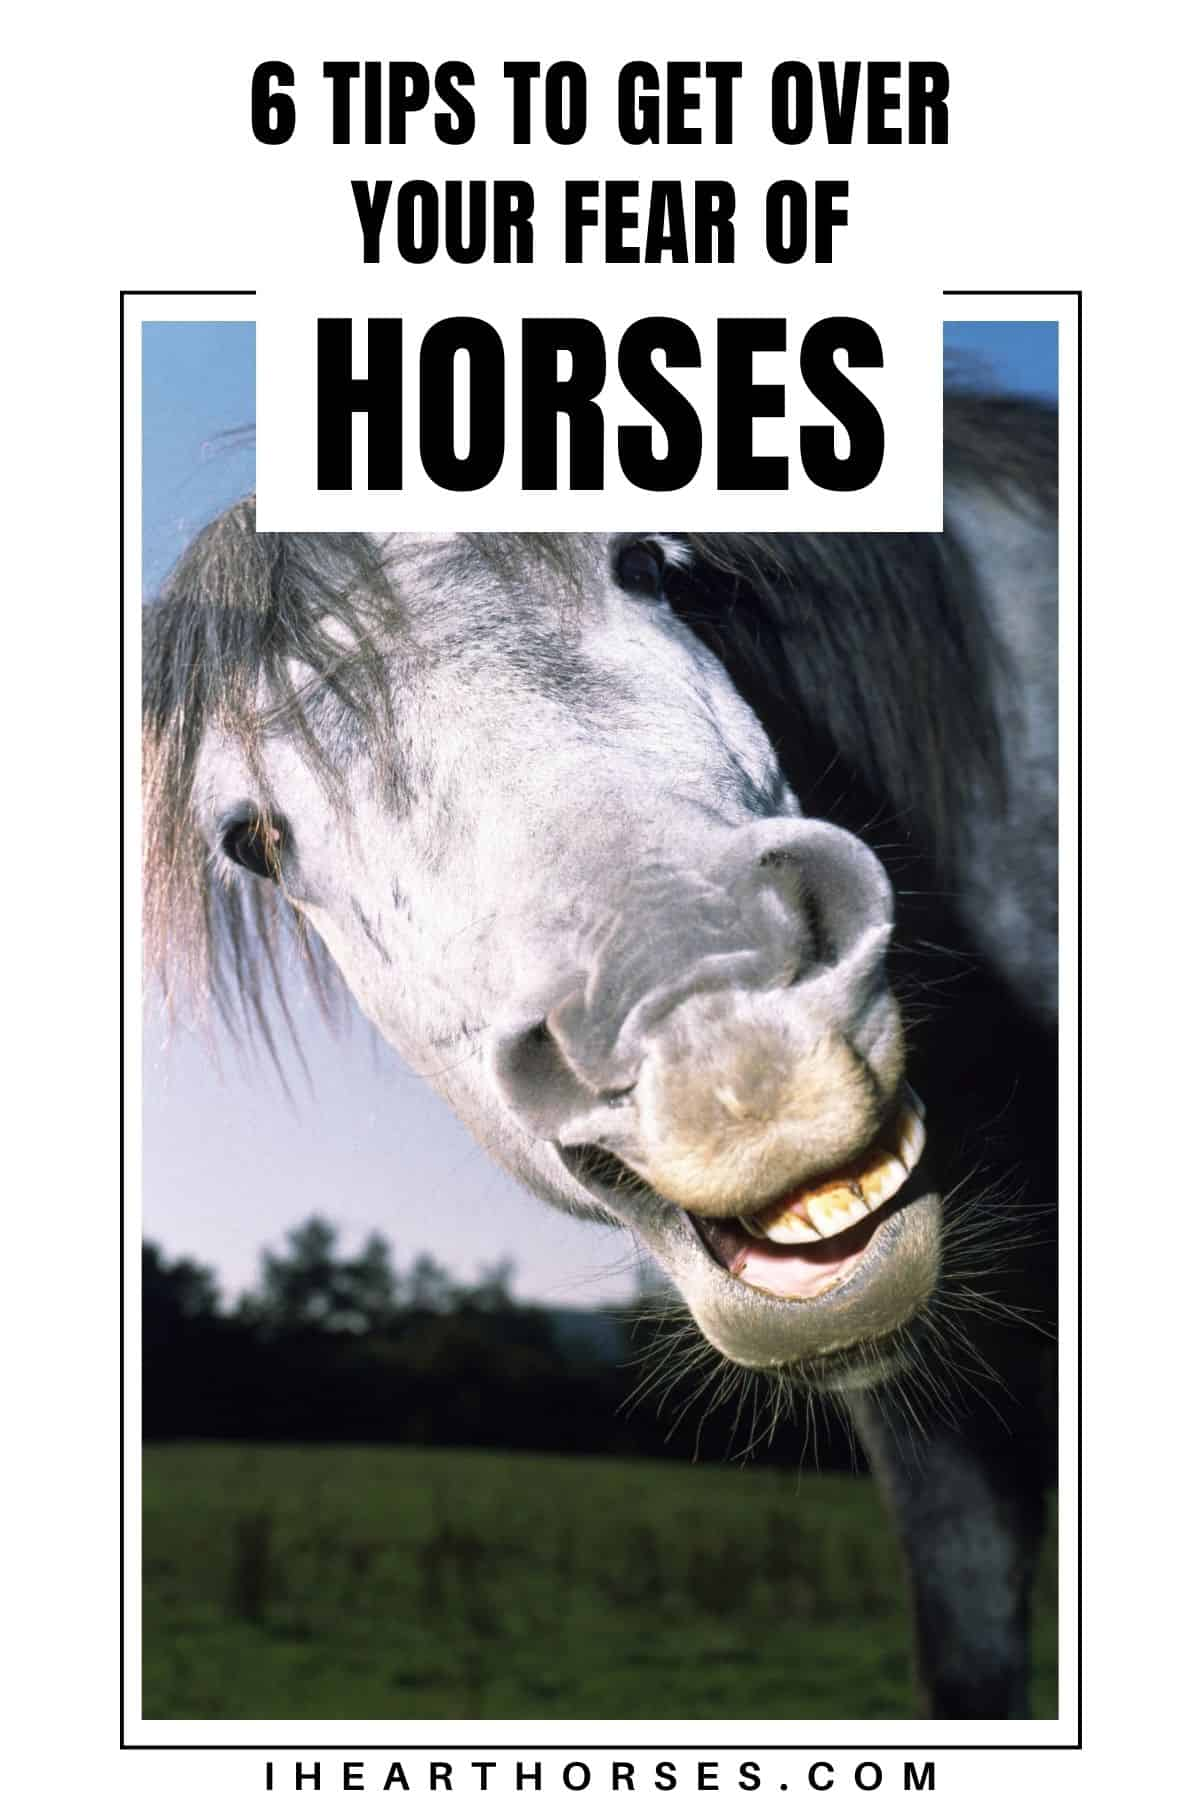 Silly horse face